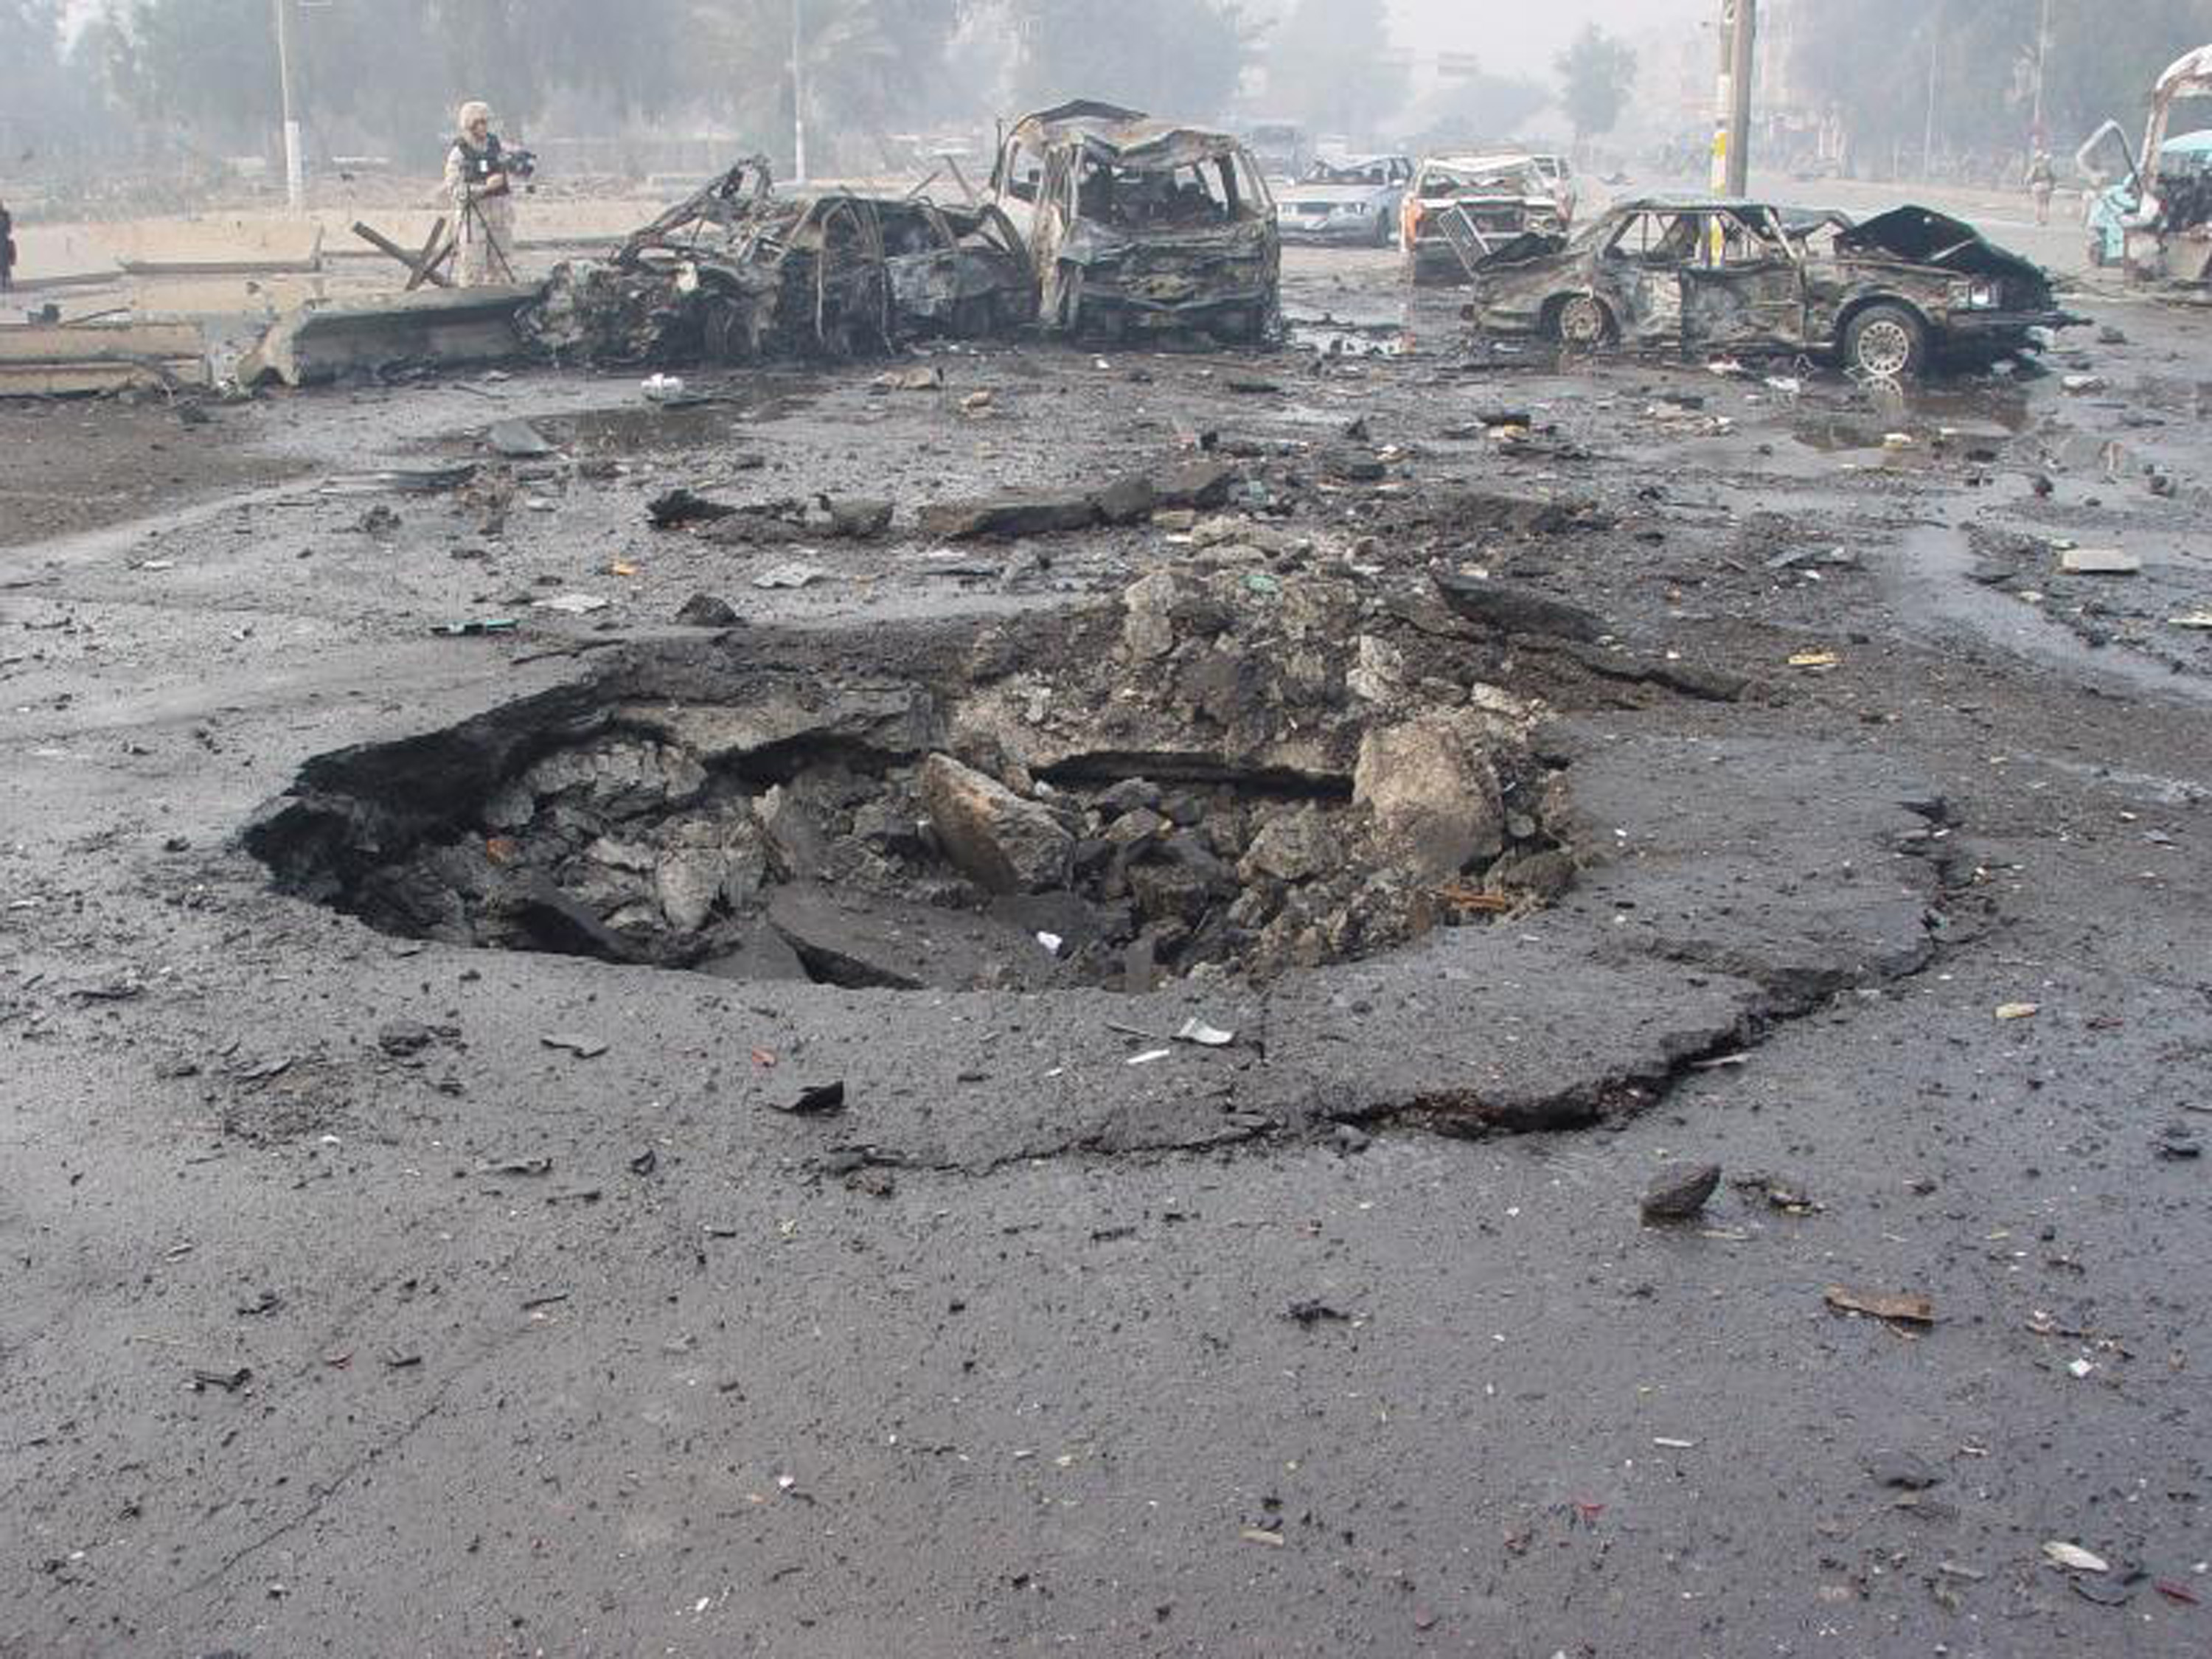 A suicide car bomb crater in Iraq, 2007